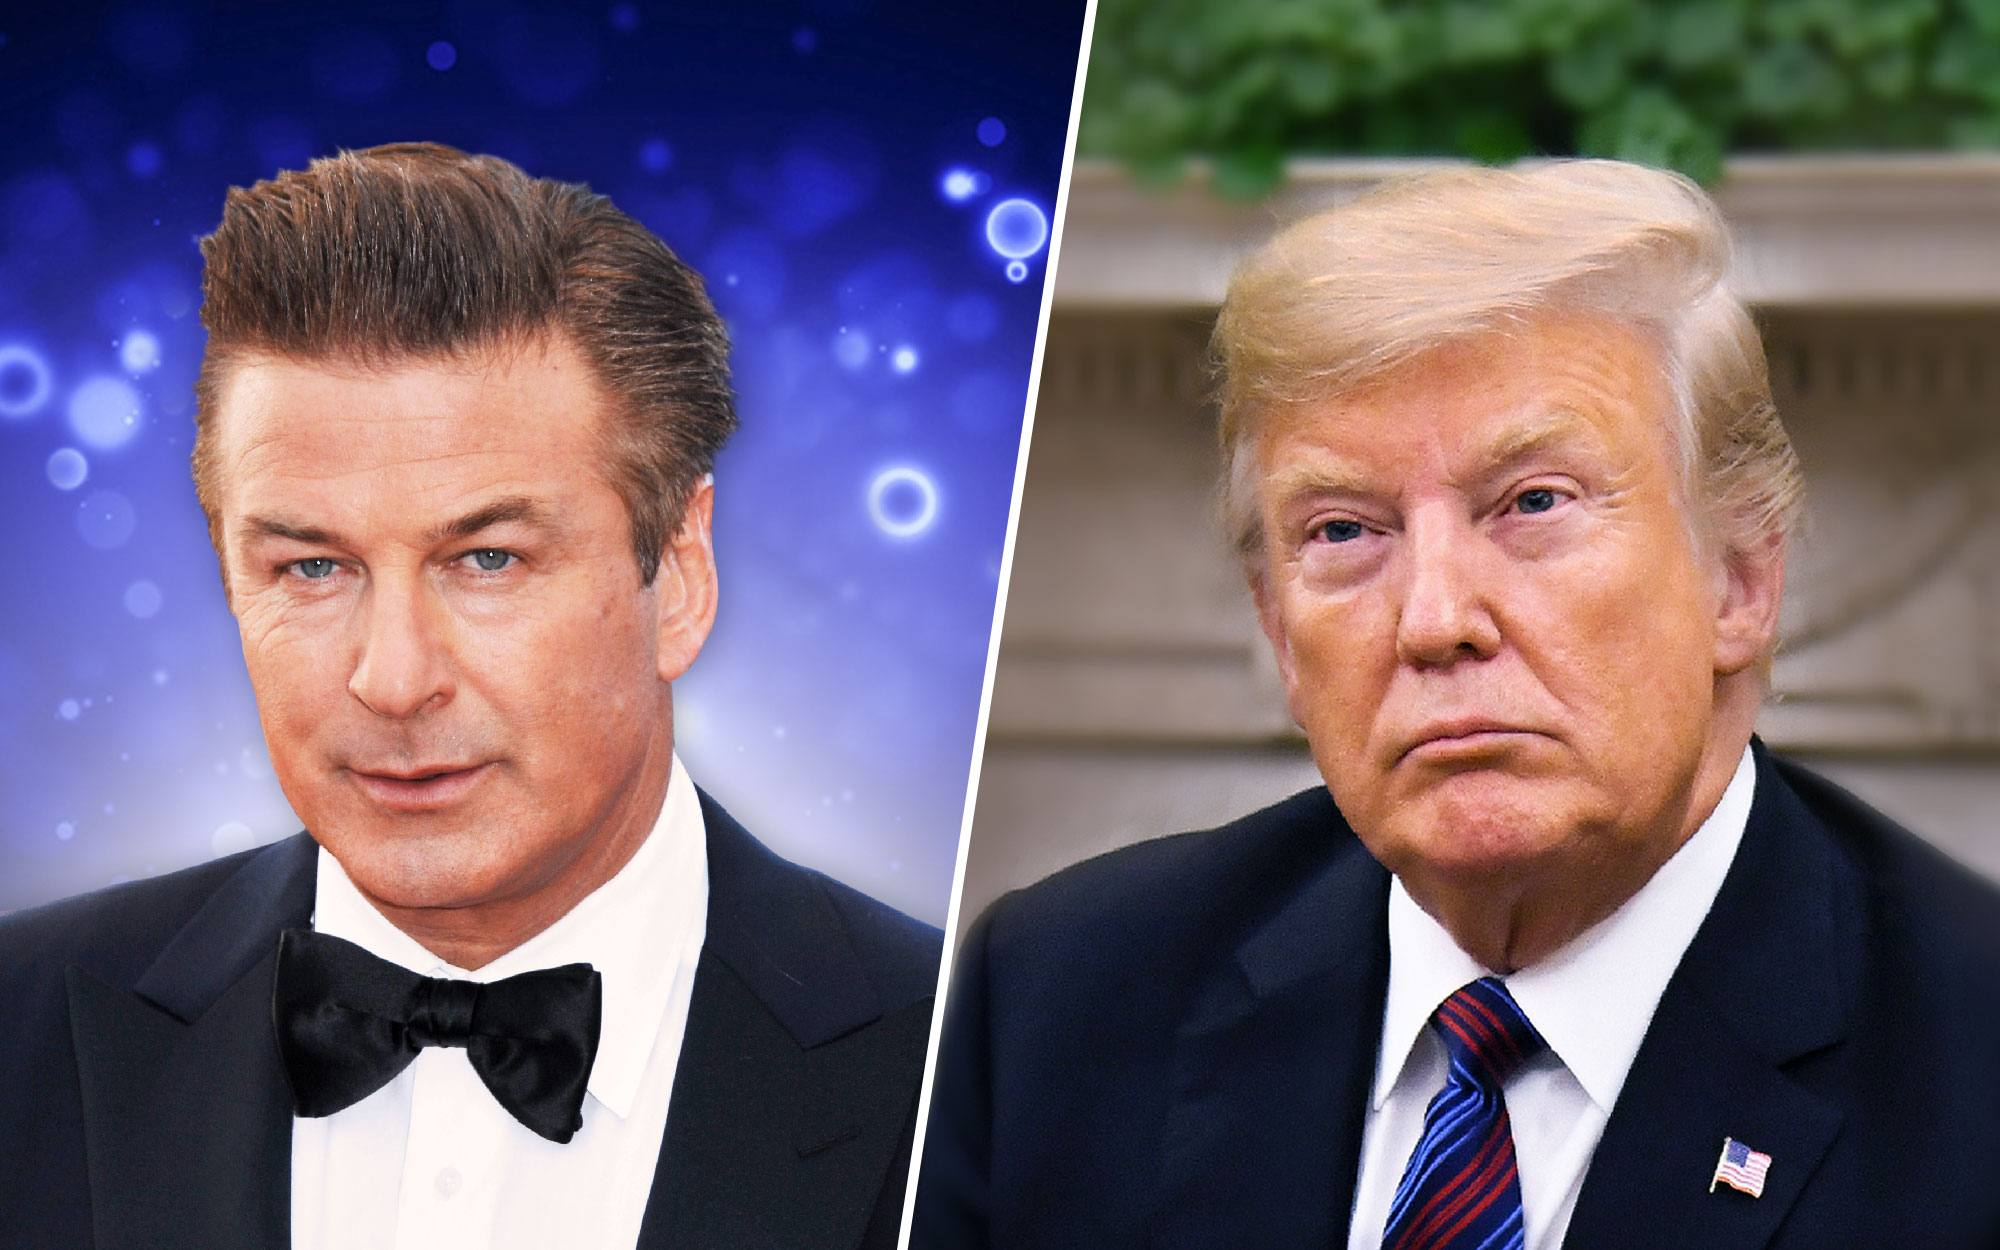 Alec Baldwin, Who Skewered Donald Trump on 'SNL' for So Long, Is Now Being Compared to Him